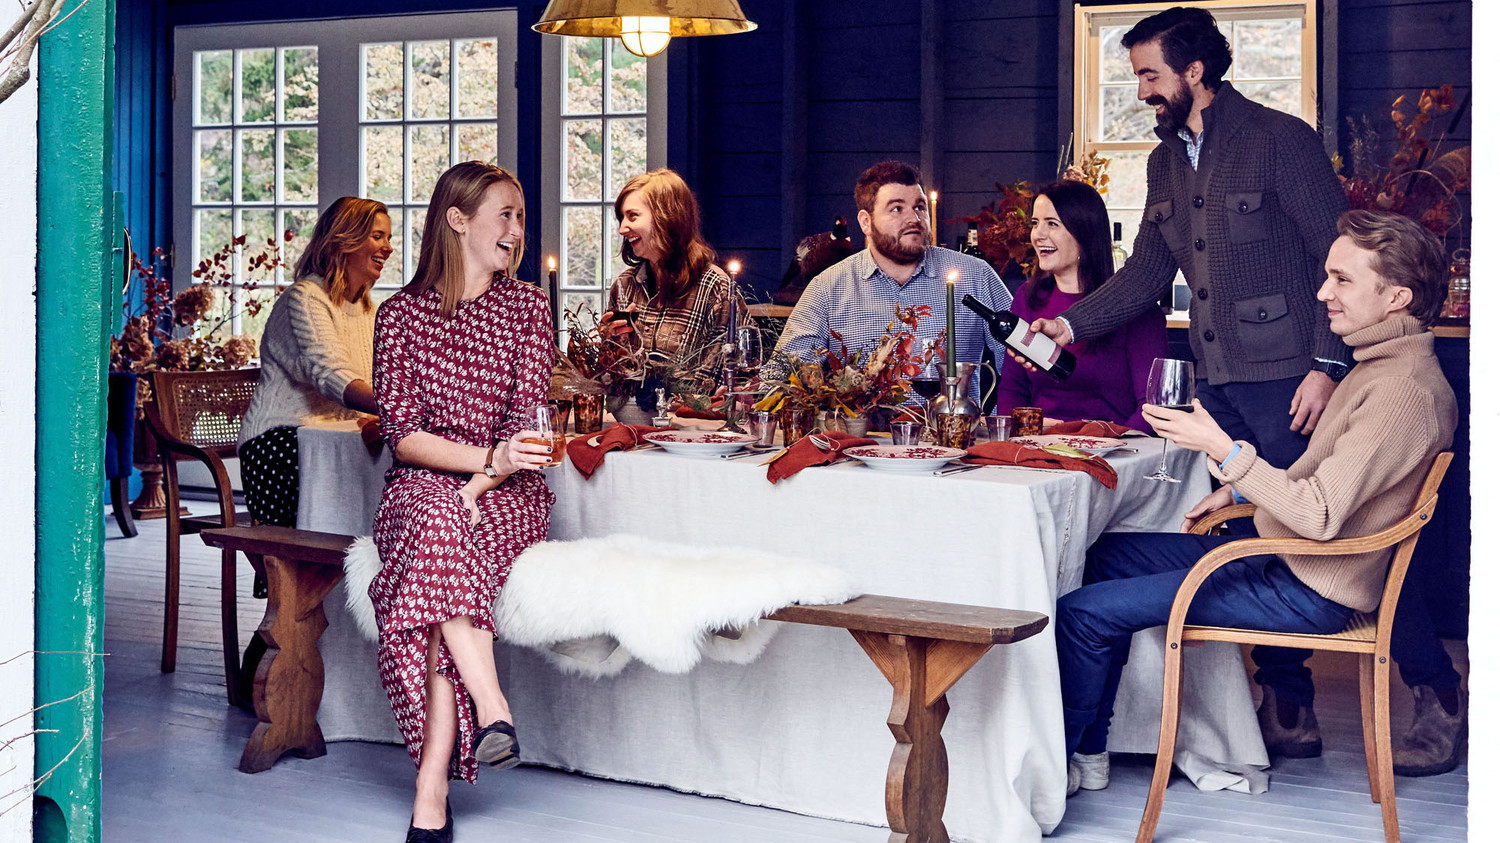 thanksgiving dinner guests at table in barn